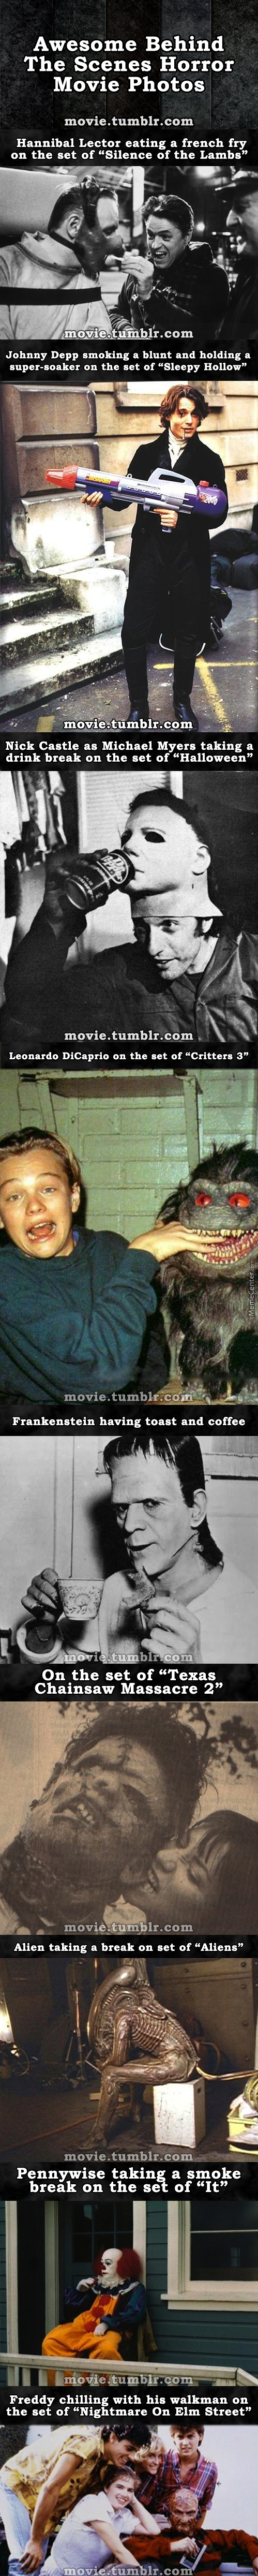 Awesome Behind The Scenes Horror Movie Photos